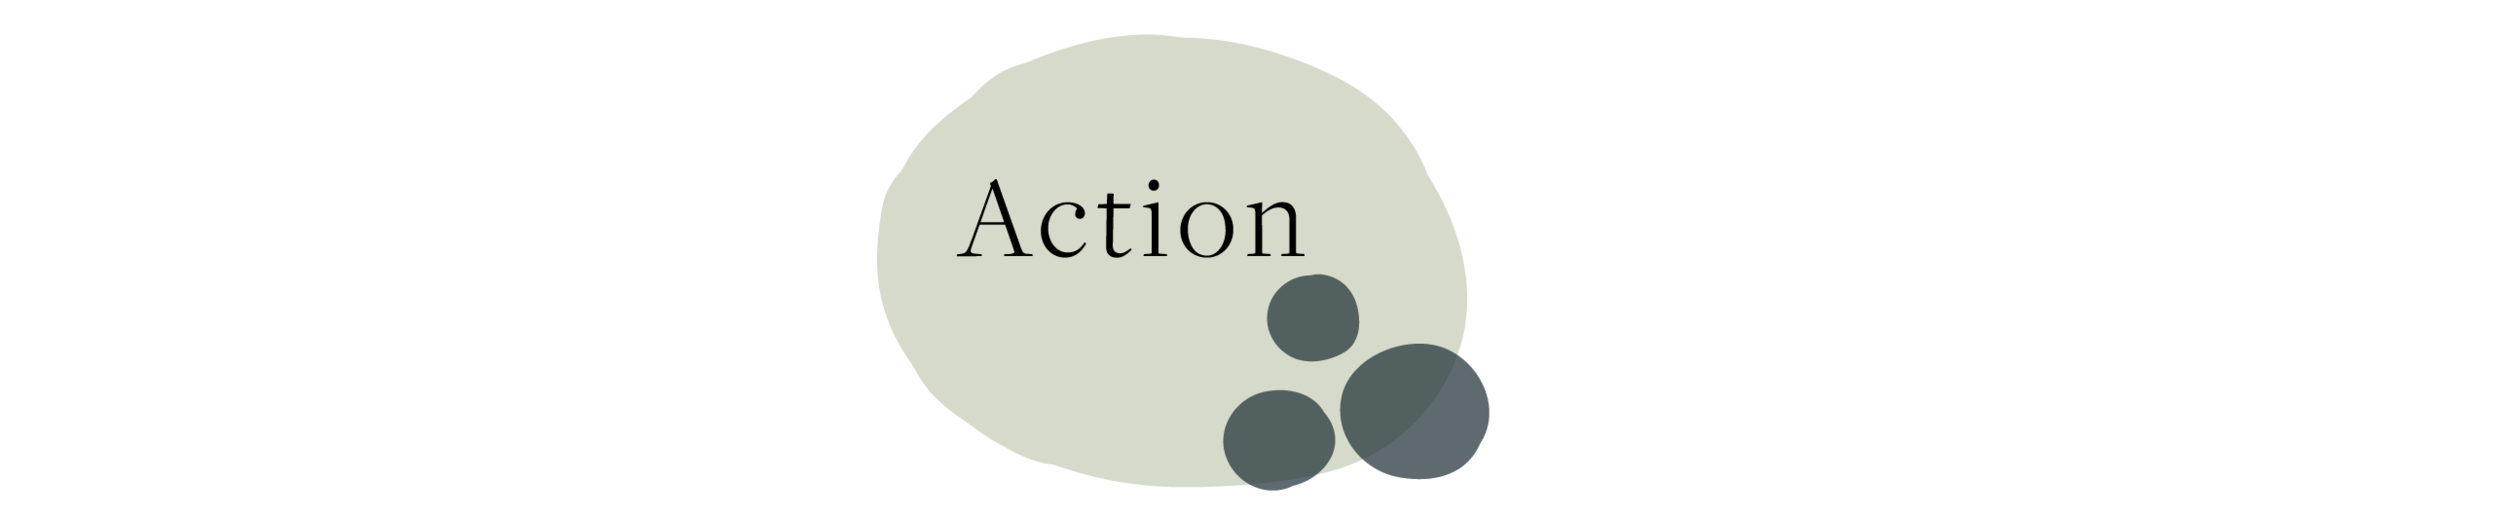 action-06.png